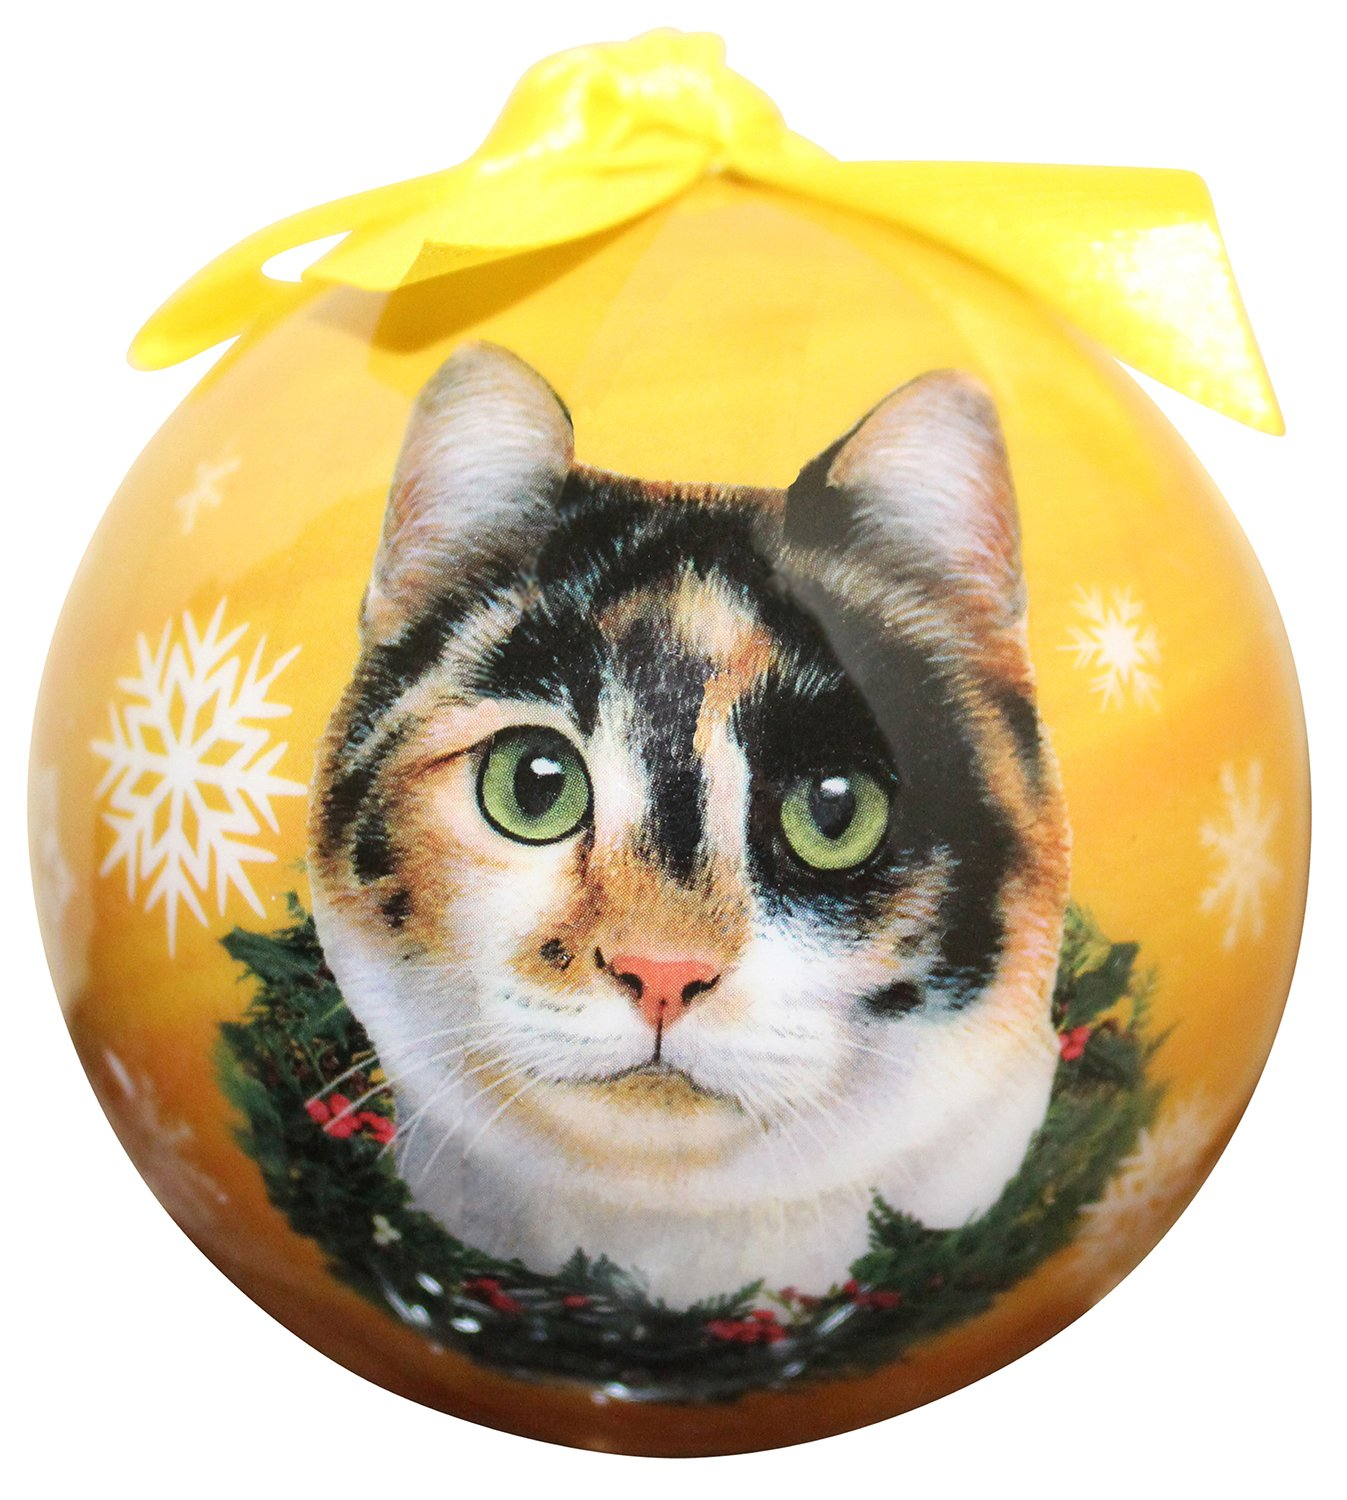 Calico Cat Christmas Ornament Shatter Proof Ball Easy To Personalize A Perfect Gift For Calico Cat Lovers E&S Pets